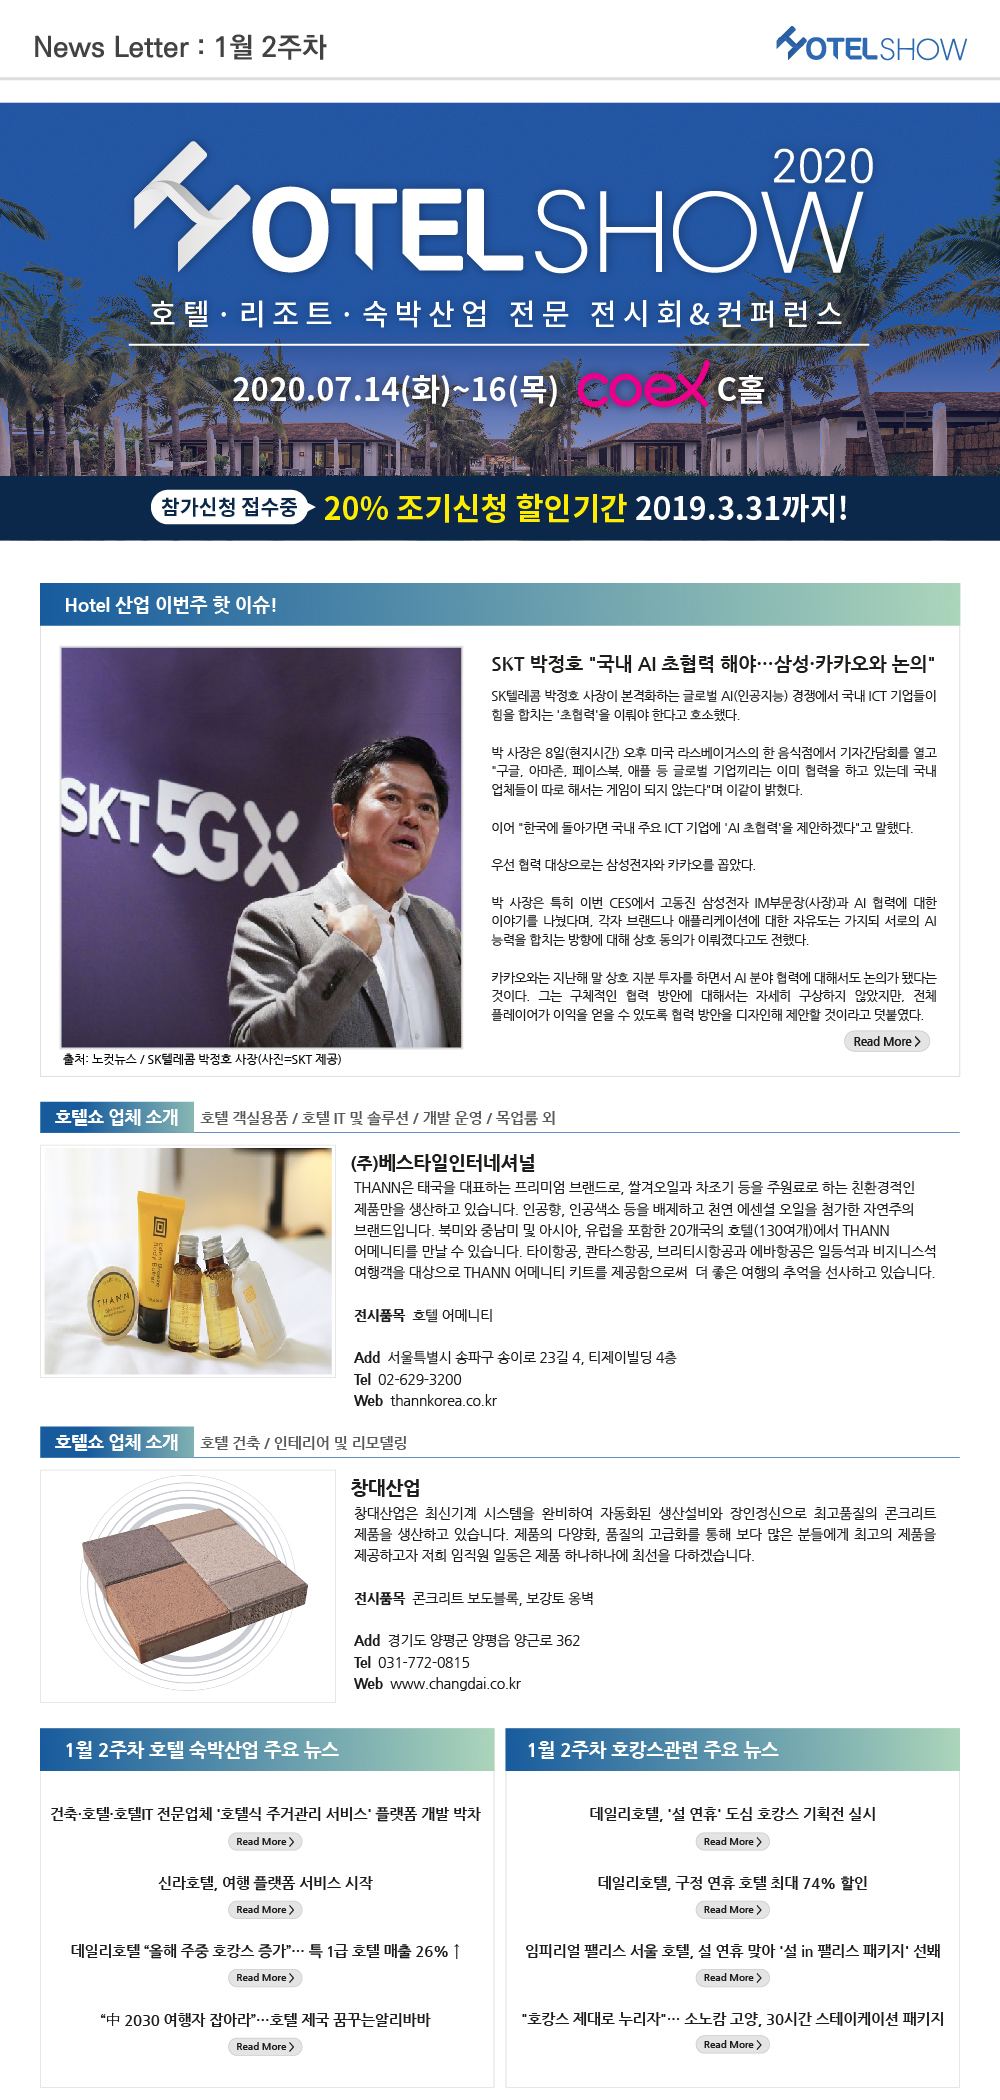 http://www.hotelshow.co.kr//img_up/shop_pds/hotelshow/design/newsletter/2020hotelshownewsletter1-2week1.jpg